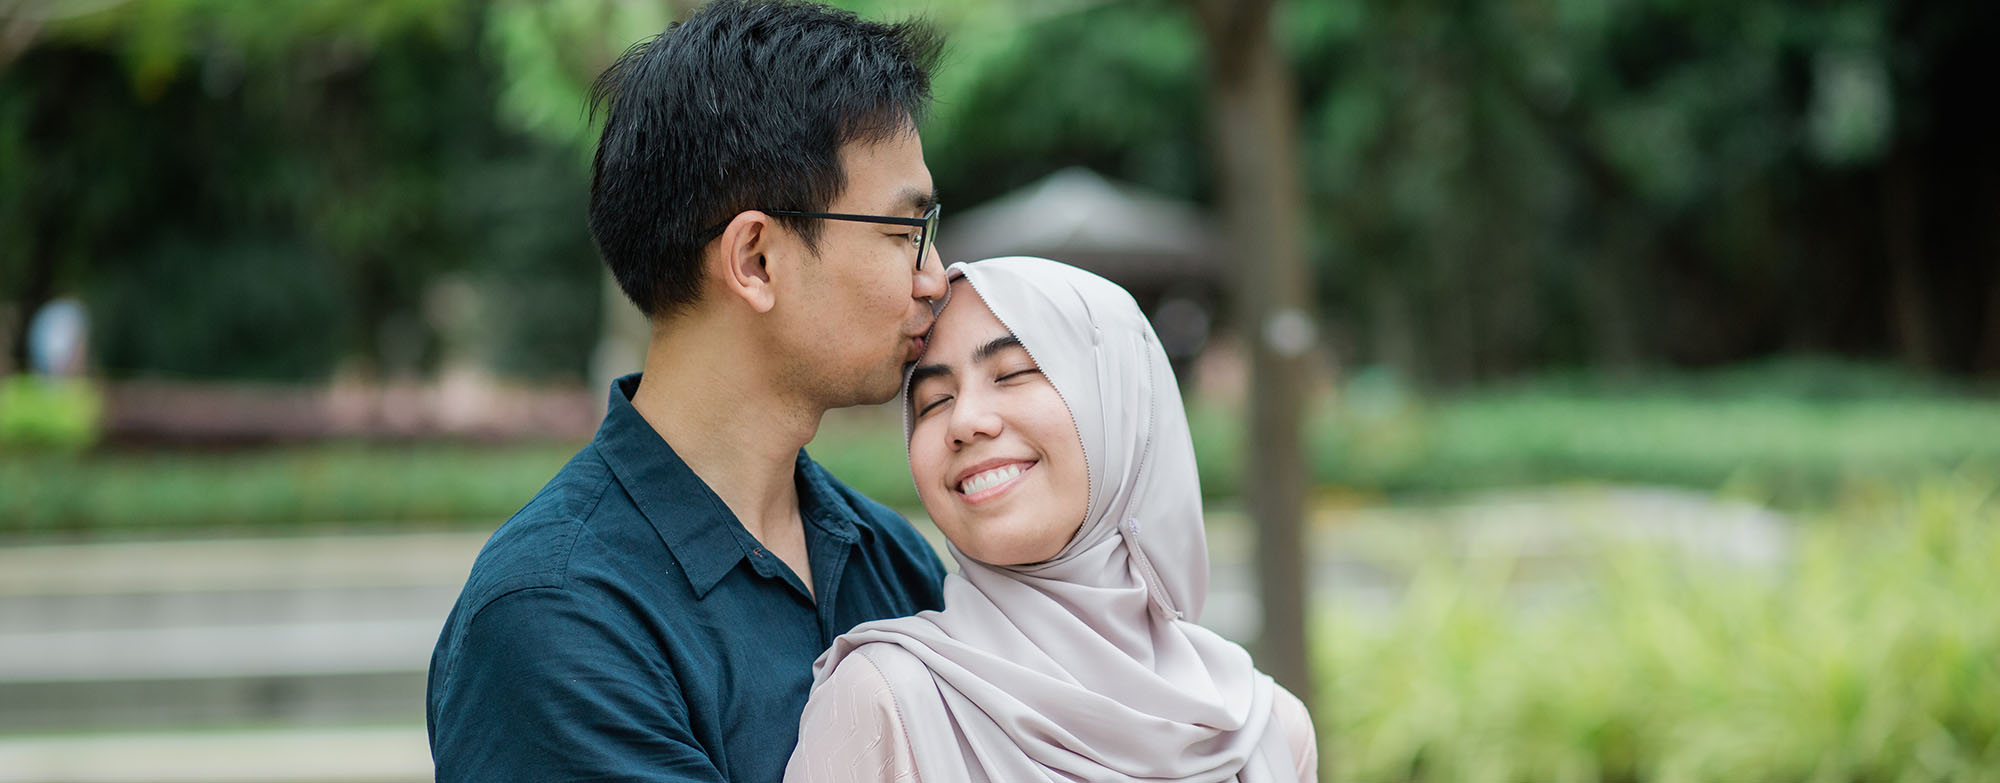 Malaysians Talk About Having Boundaries in Marriage